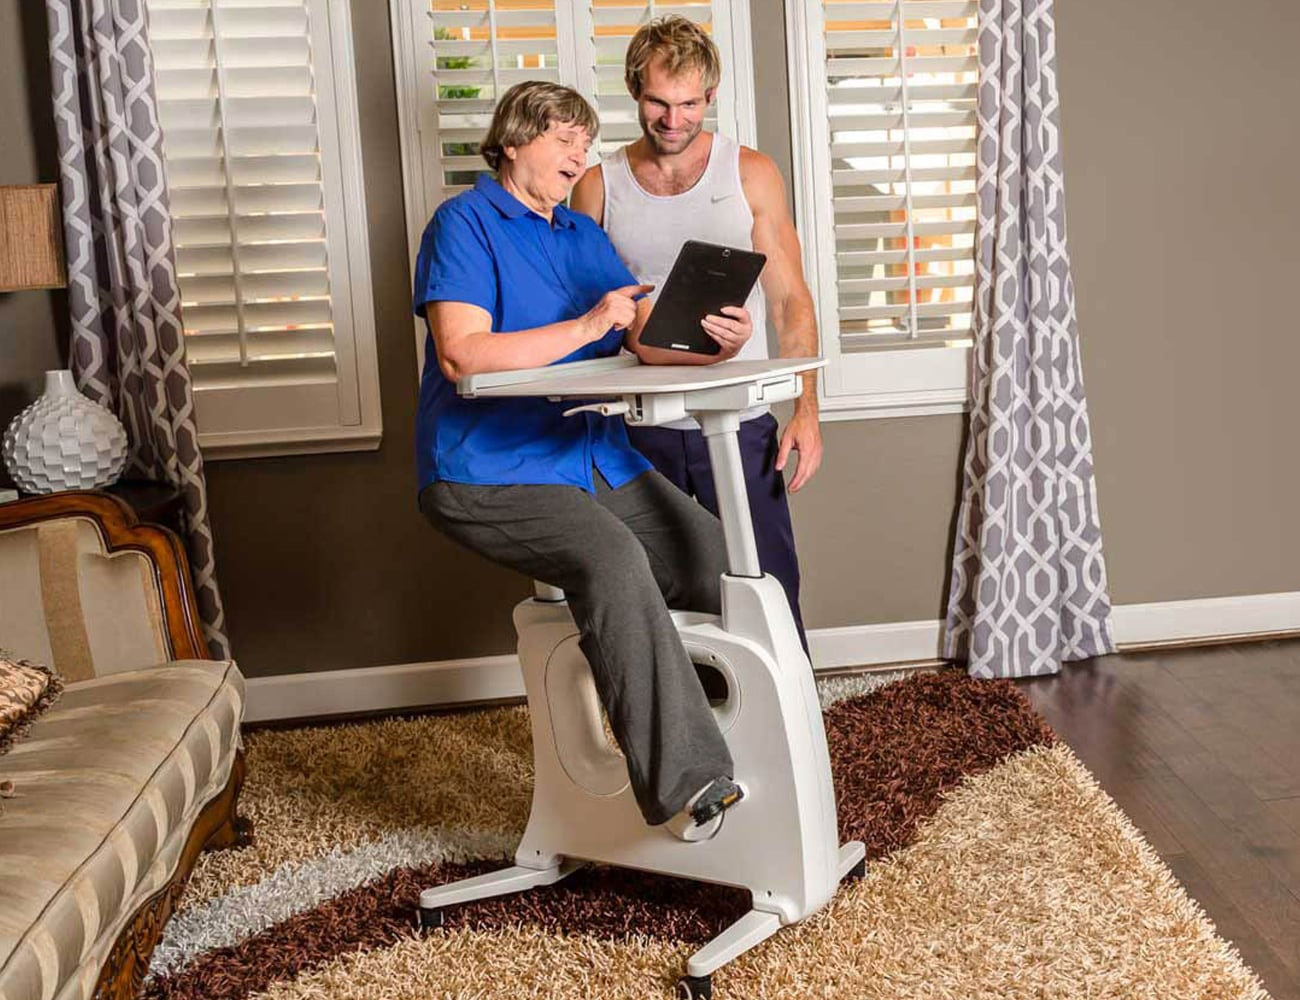 FlexiSpot Deskcise Pro Cycle Desk